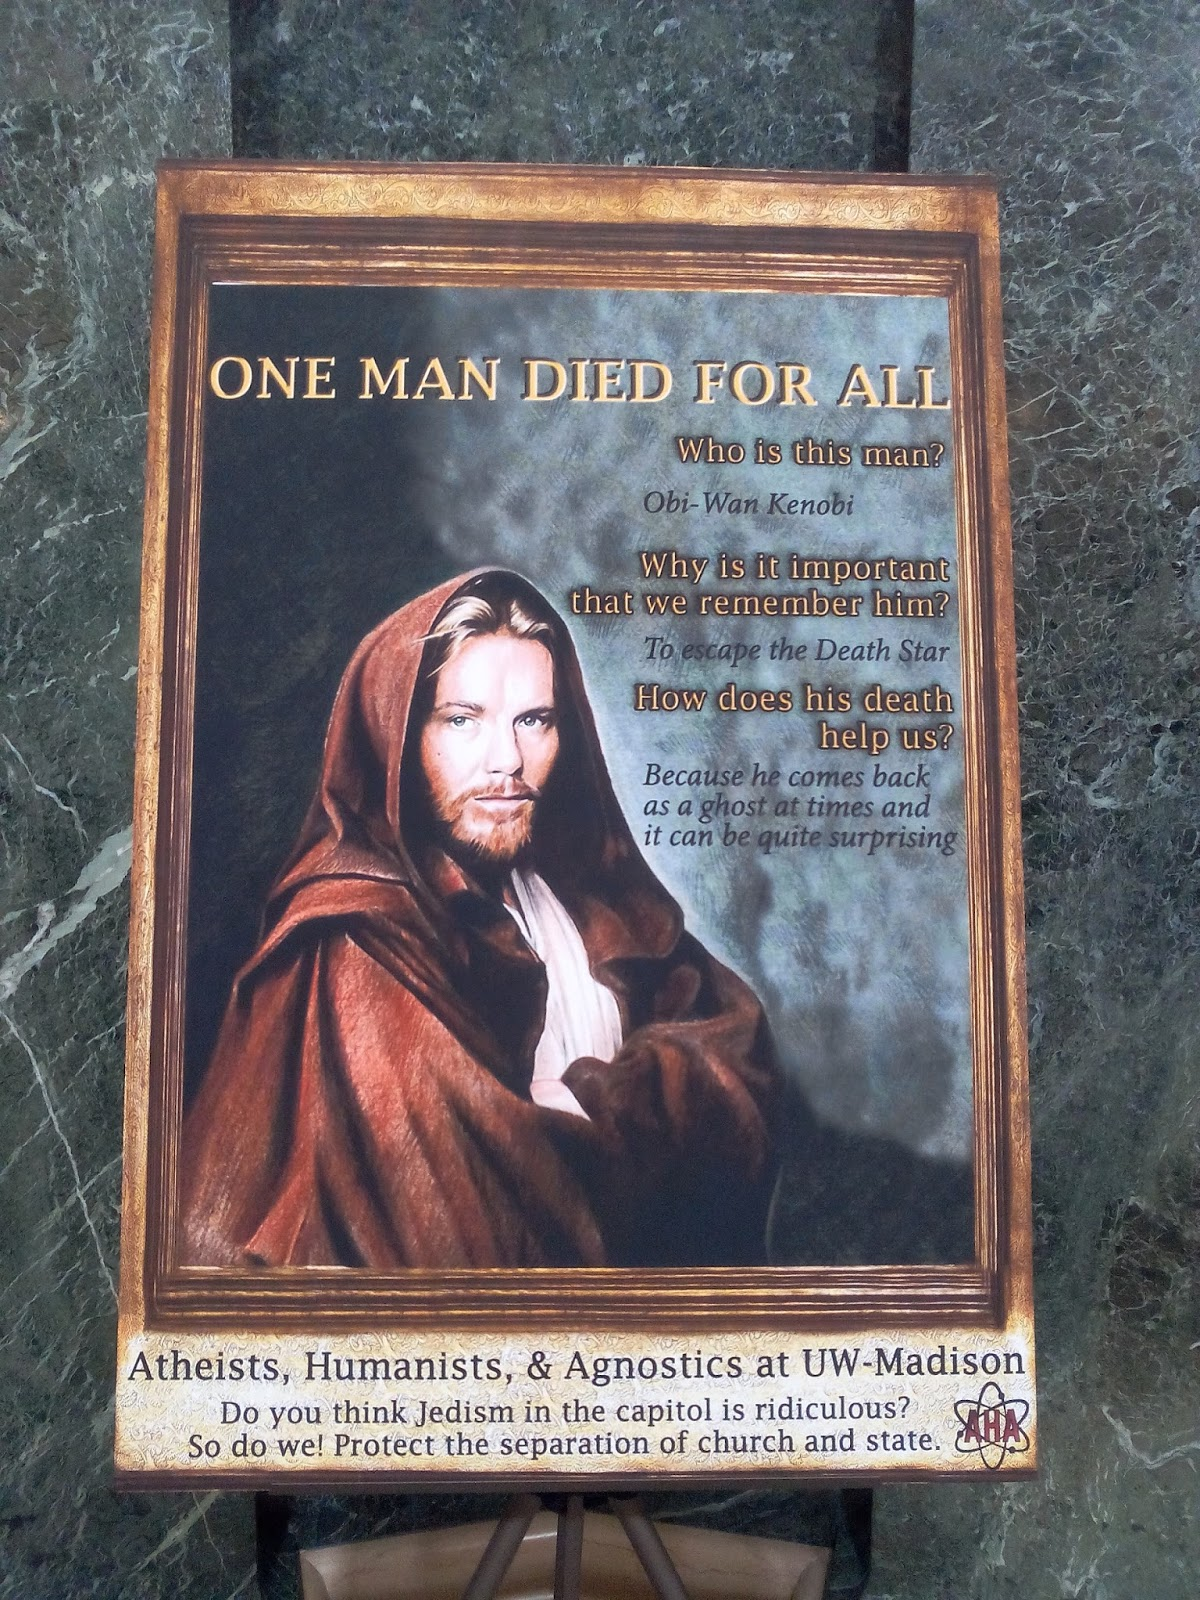 For Easter, There's a Display Honoring Obi-Wan Kenobi in the Wisconsin State Capitol